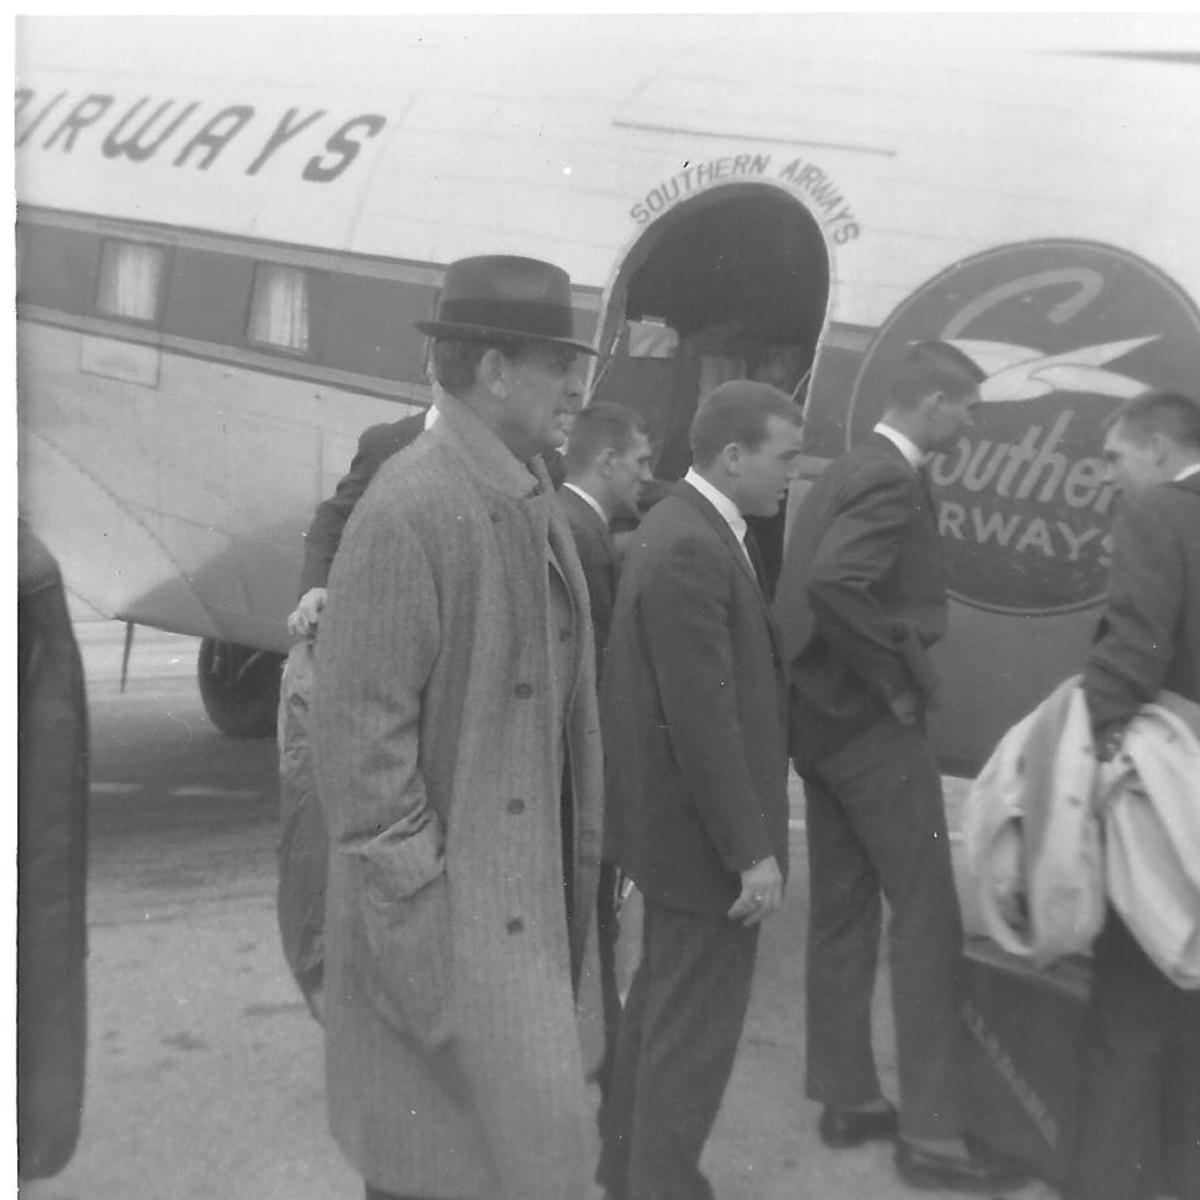 Coach Paul Bryant and Alabama arrive in New Orleans for the Sugar Bowl.